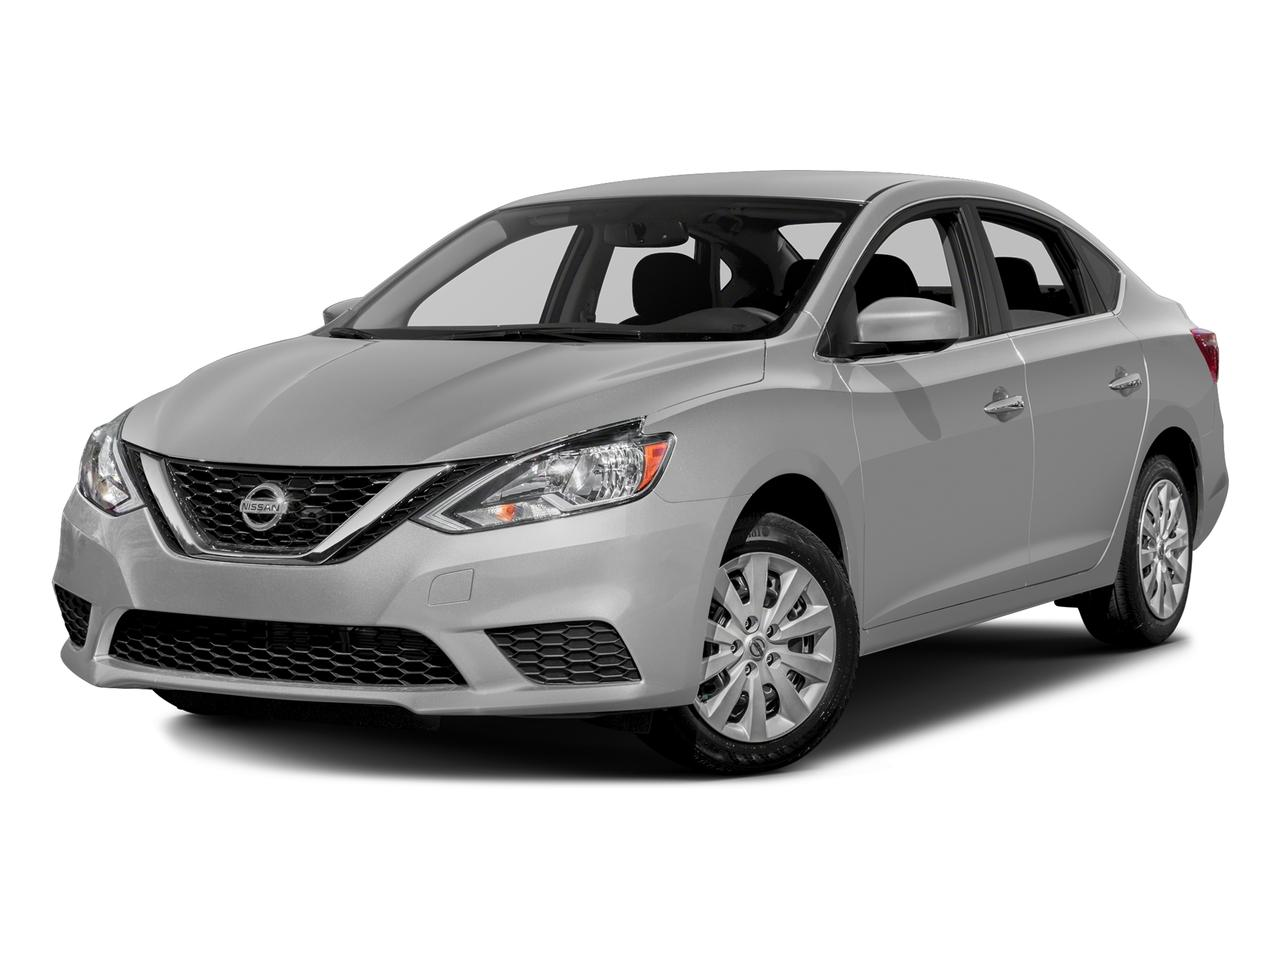 Tucson All 2017 Nissan Sentra Vehicles For Sale Log book on handstart n gobody needs tlcphn 0711278295.read more. tucson all 2017 nissan sentra